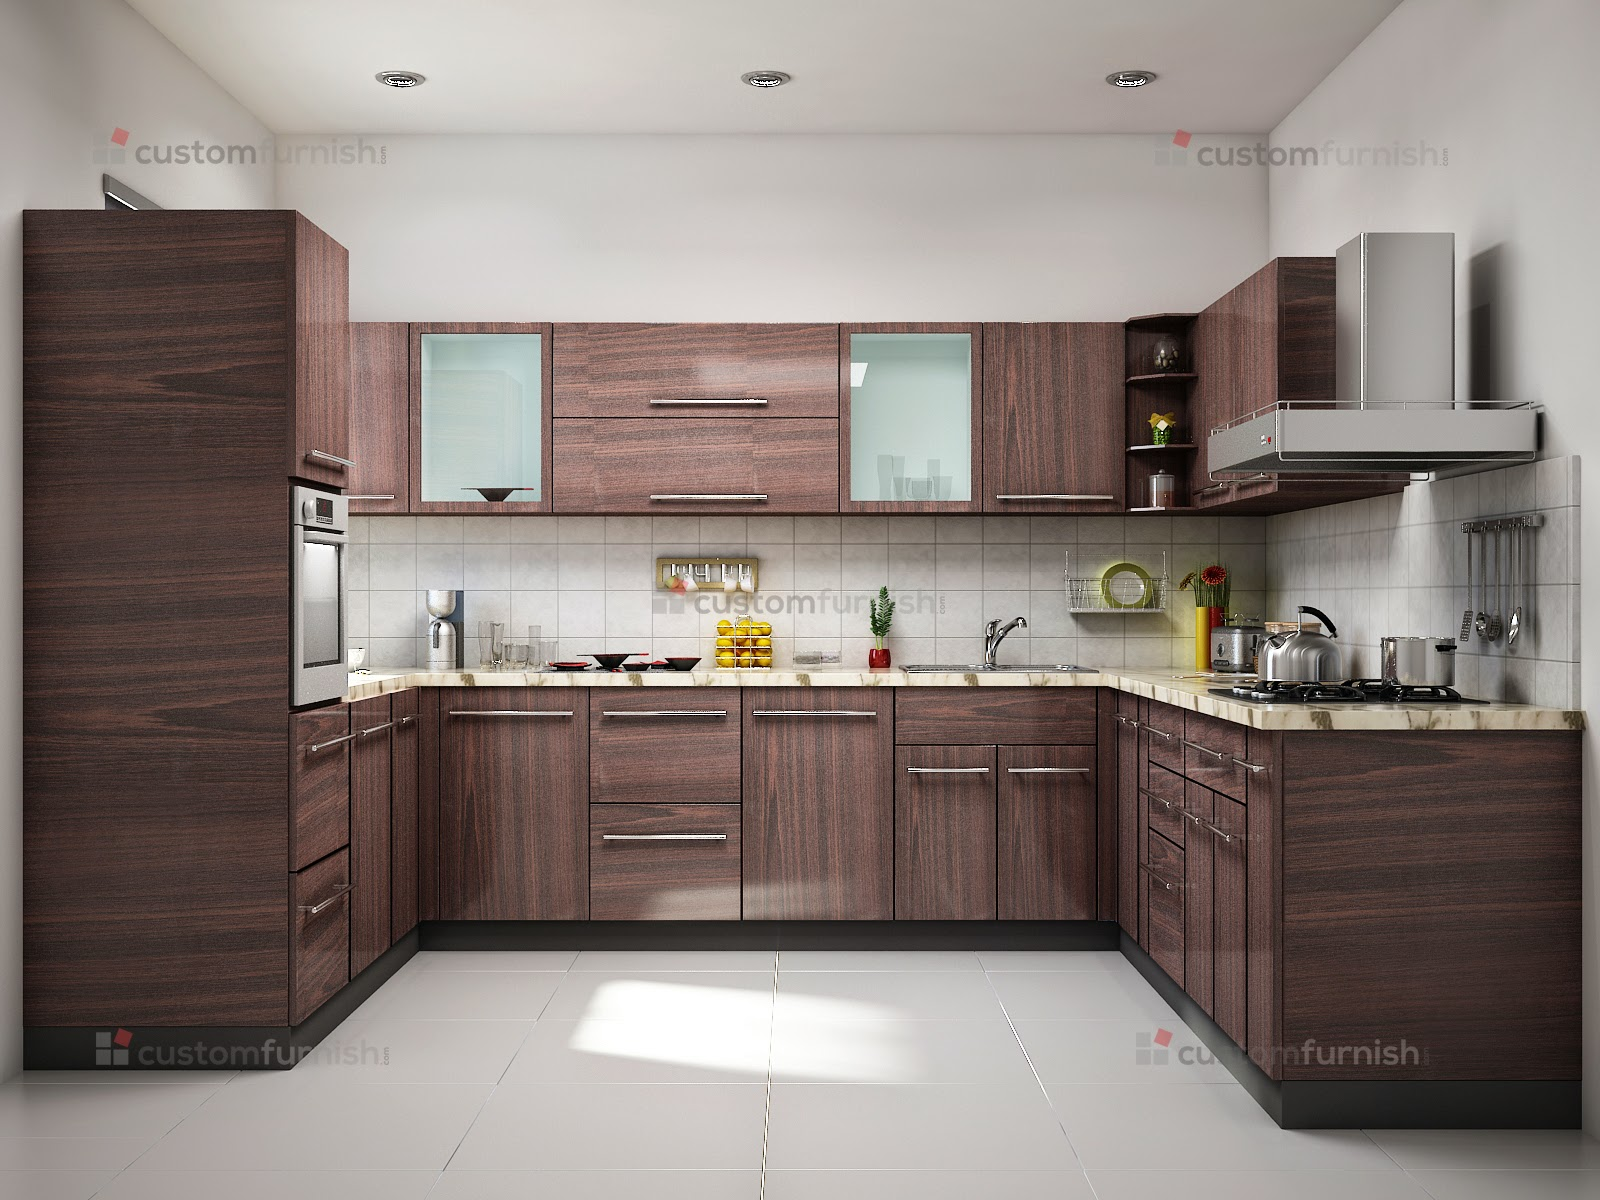 Stylish and modern kitchens interior decor blog I shaped kitchen